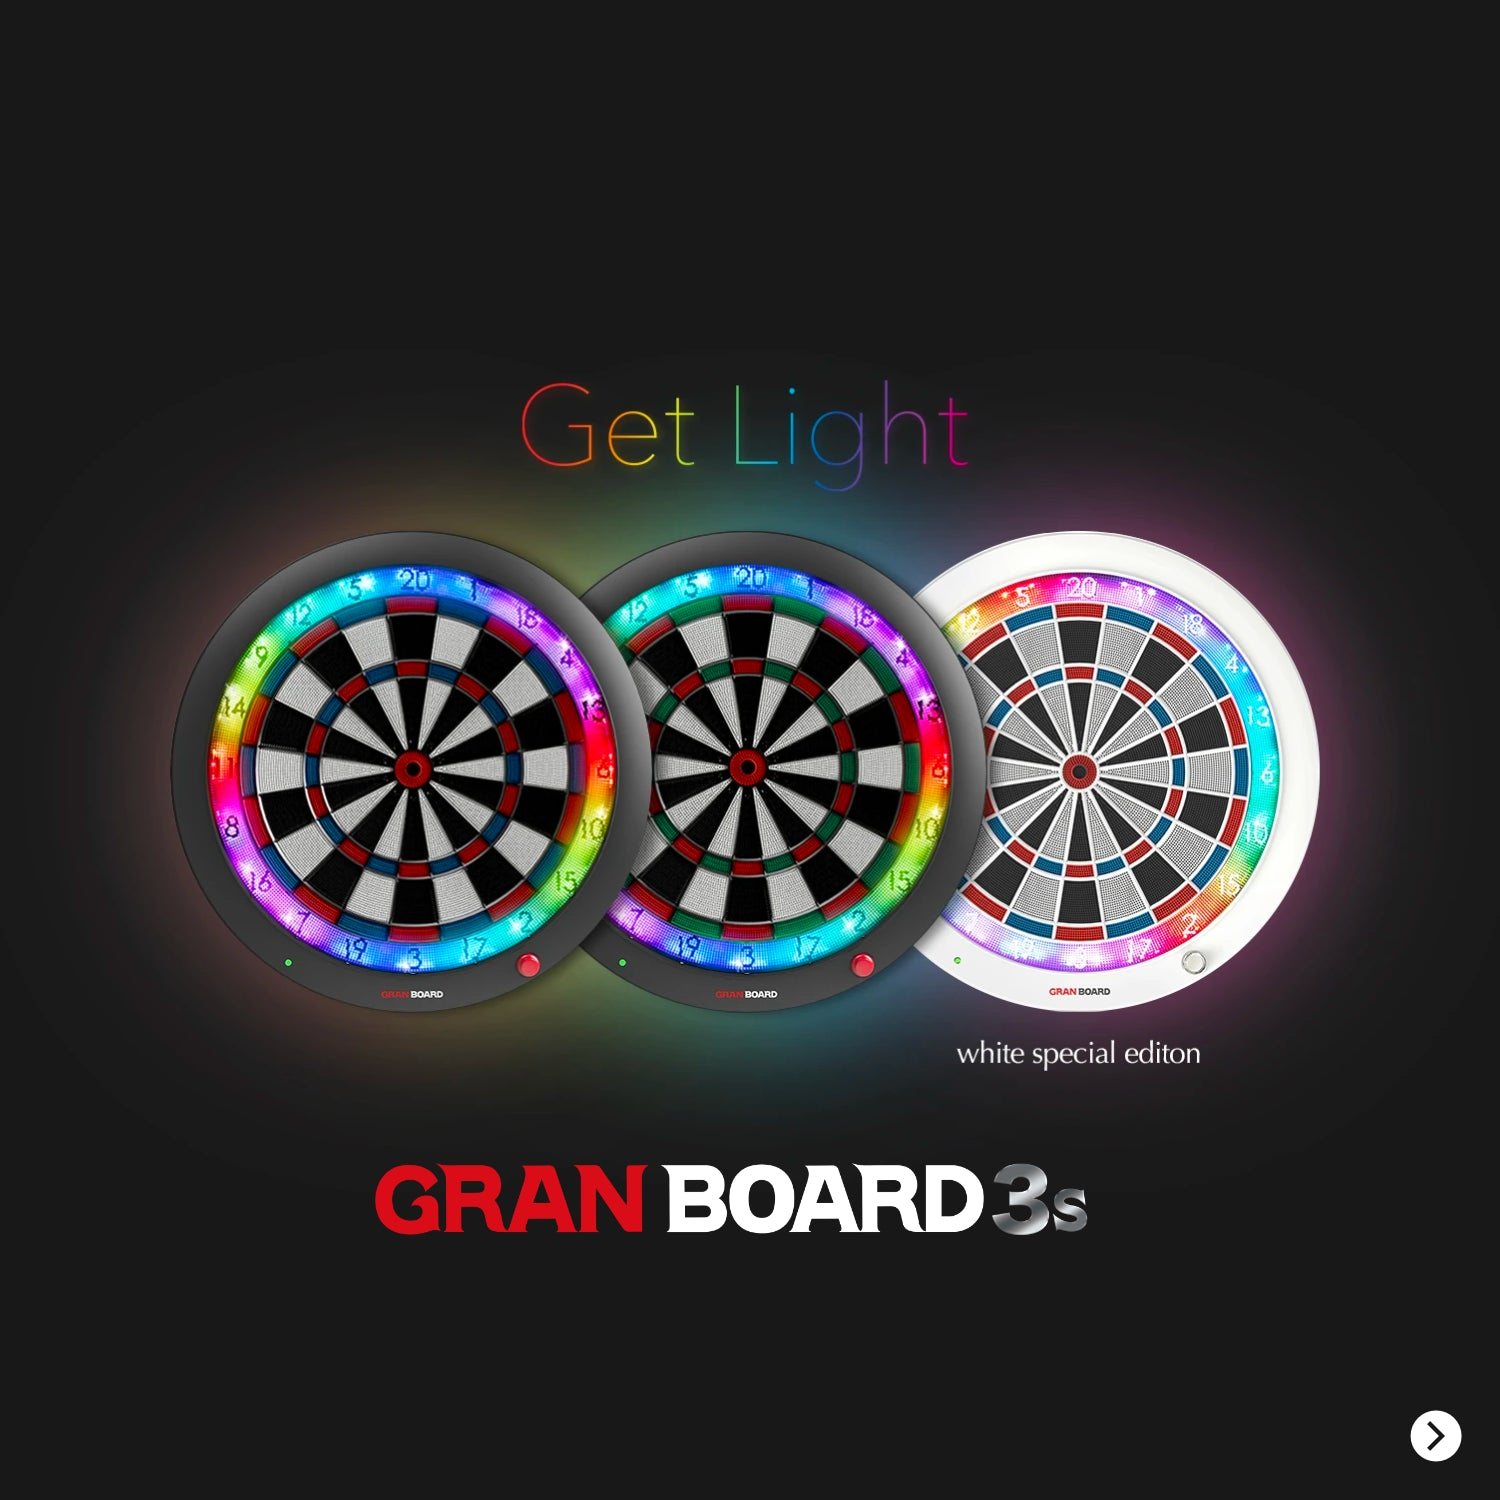 GRANBOARD3s - the best darts experience - the largest online darts community